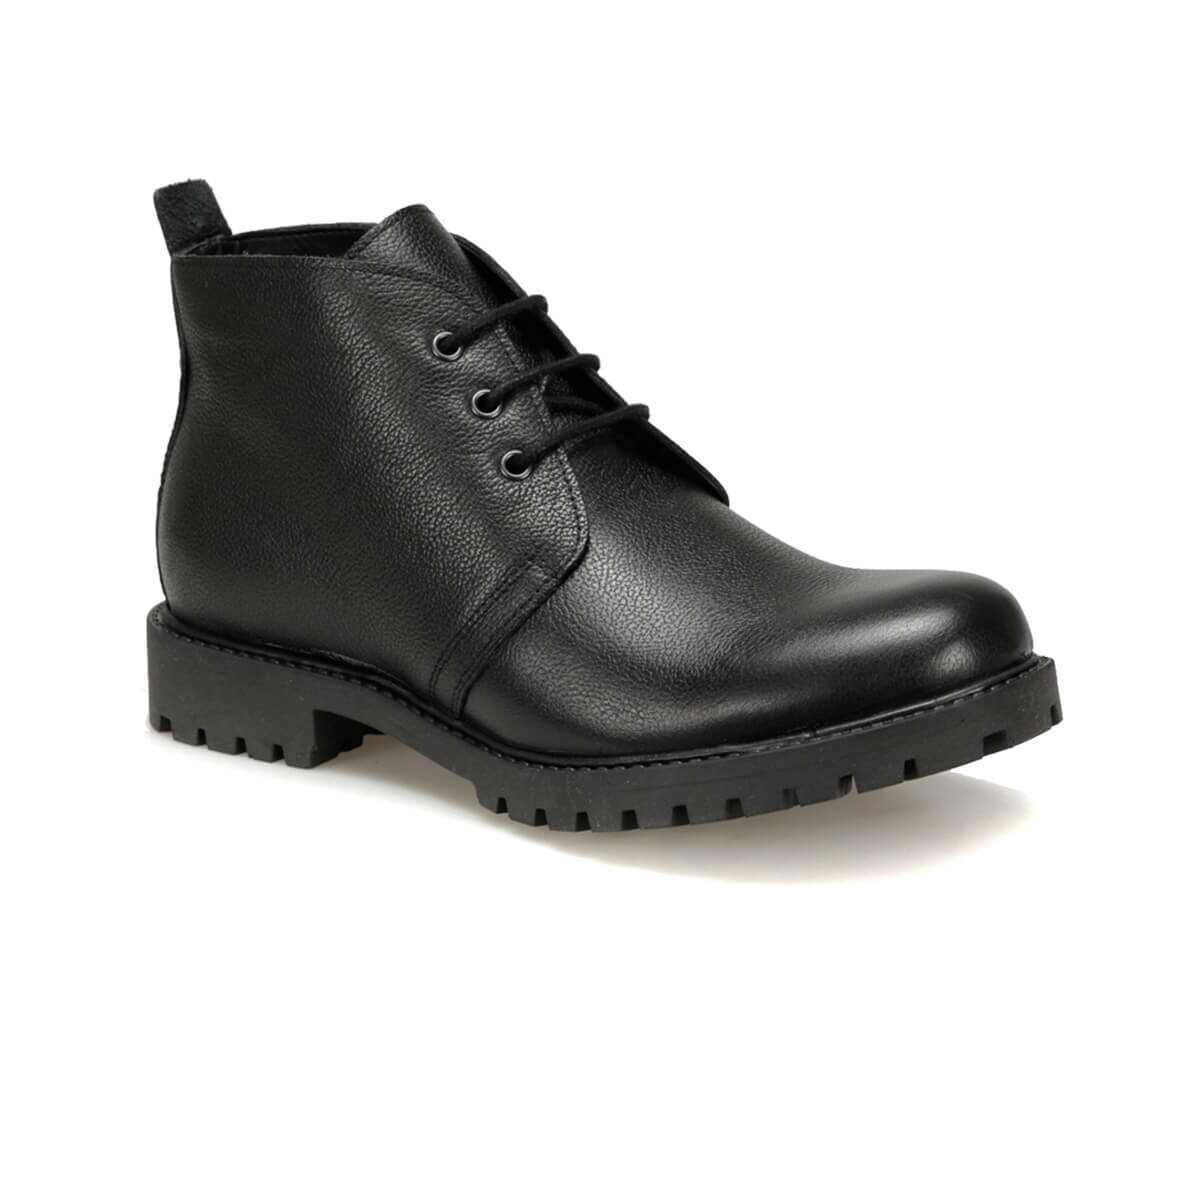 FLO RBT-1 Black Men Boots Forester